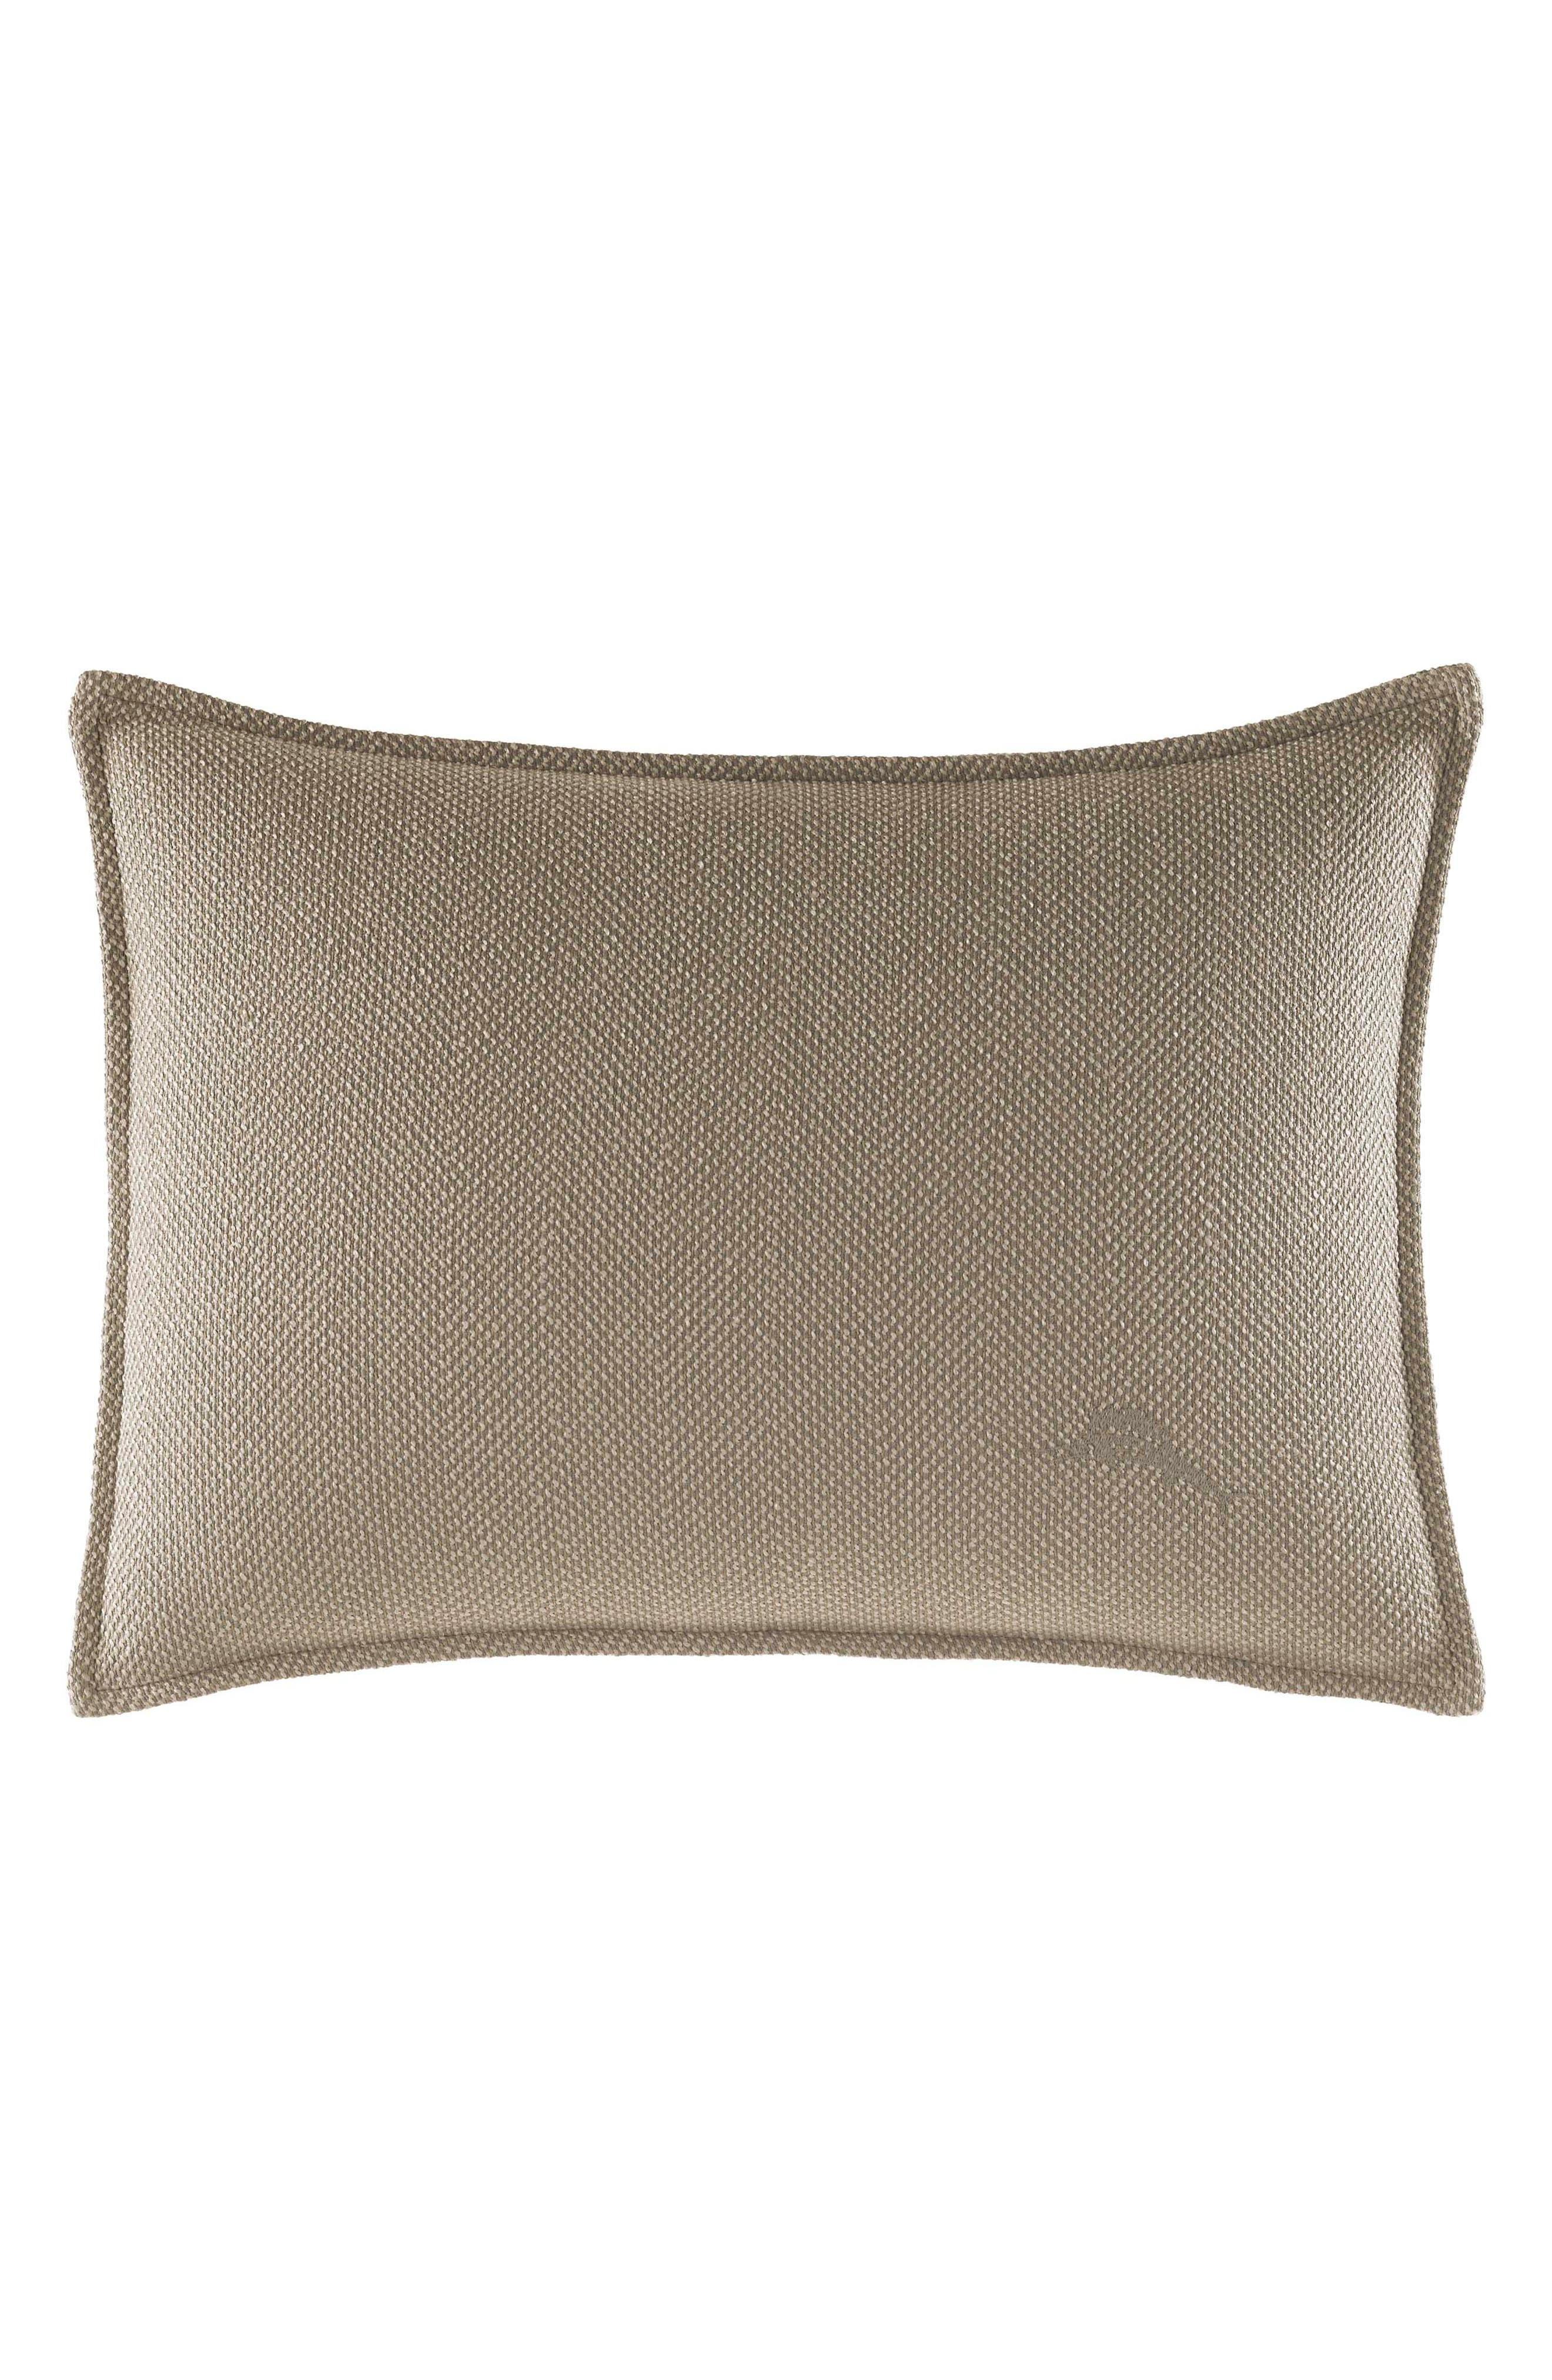 Raffia Palms Pillow,                             Main thumbnail 1, color,                             020